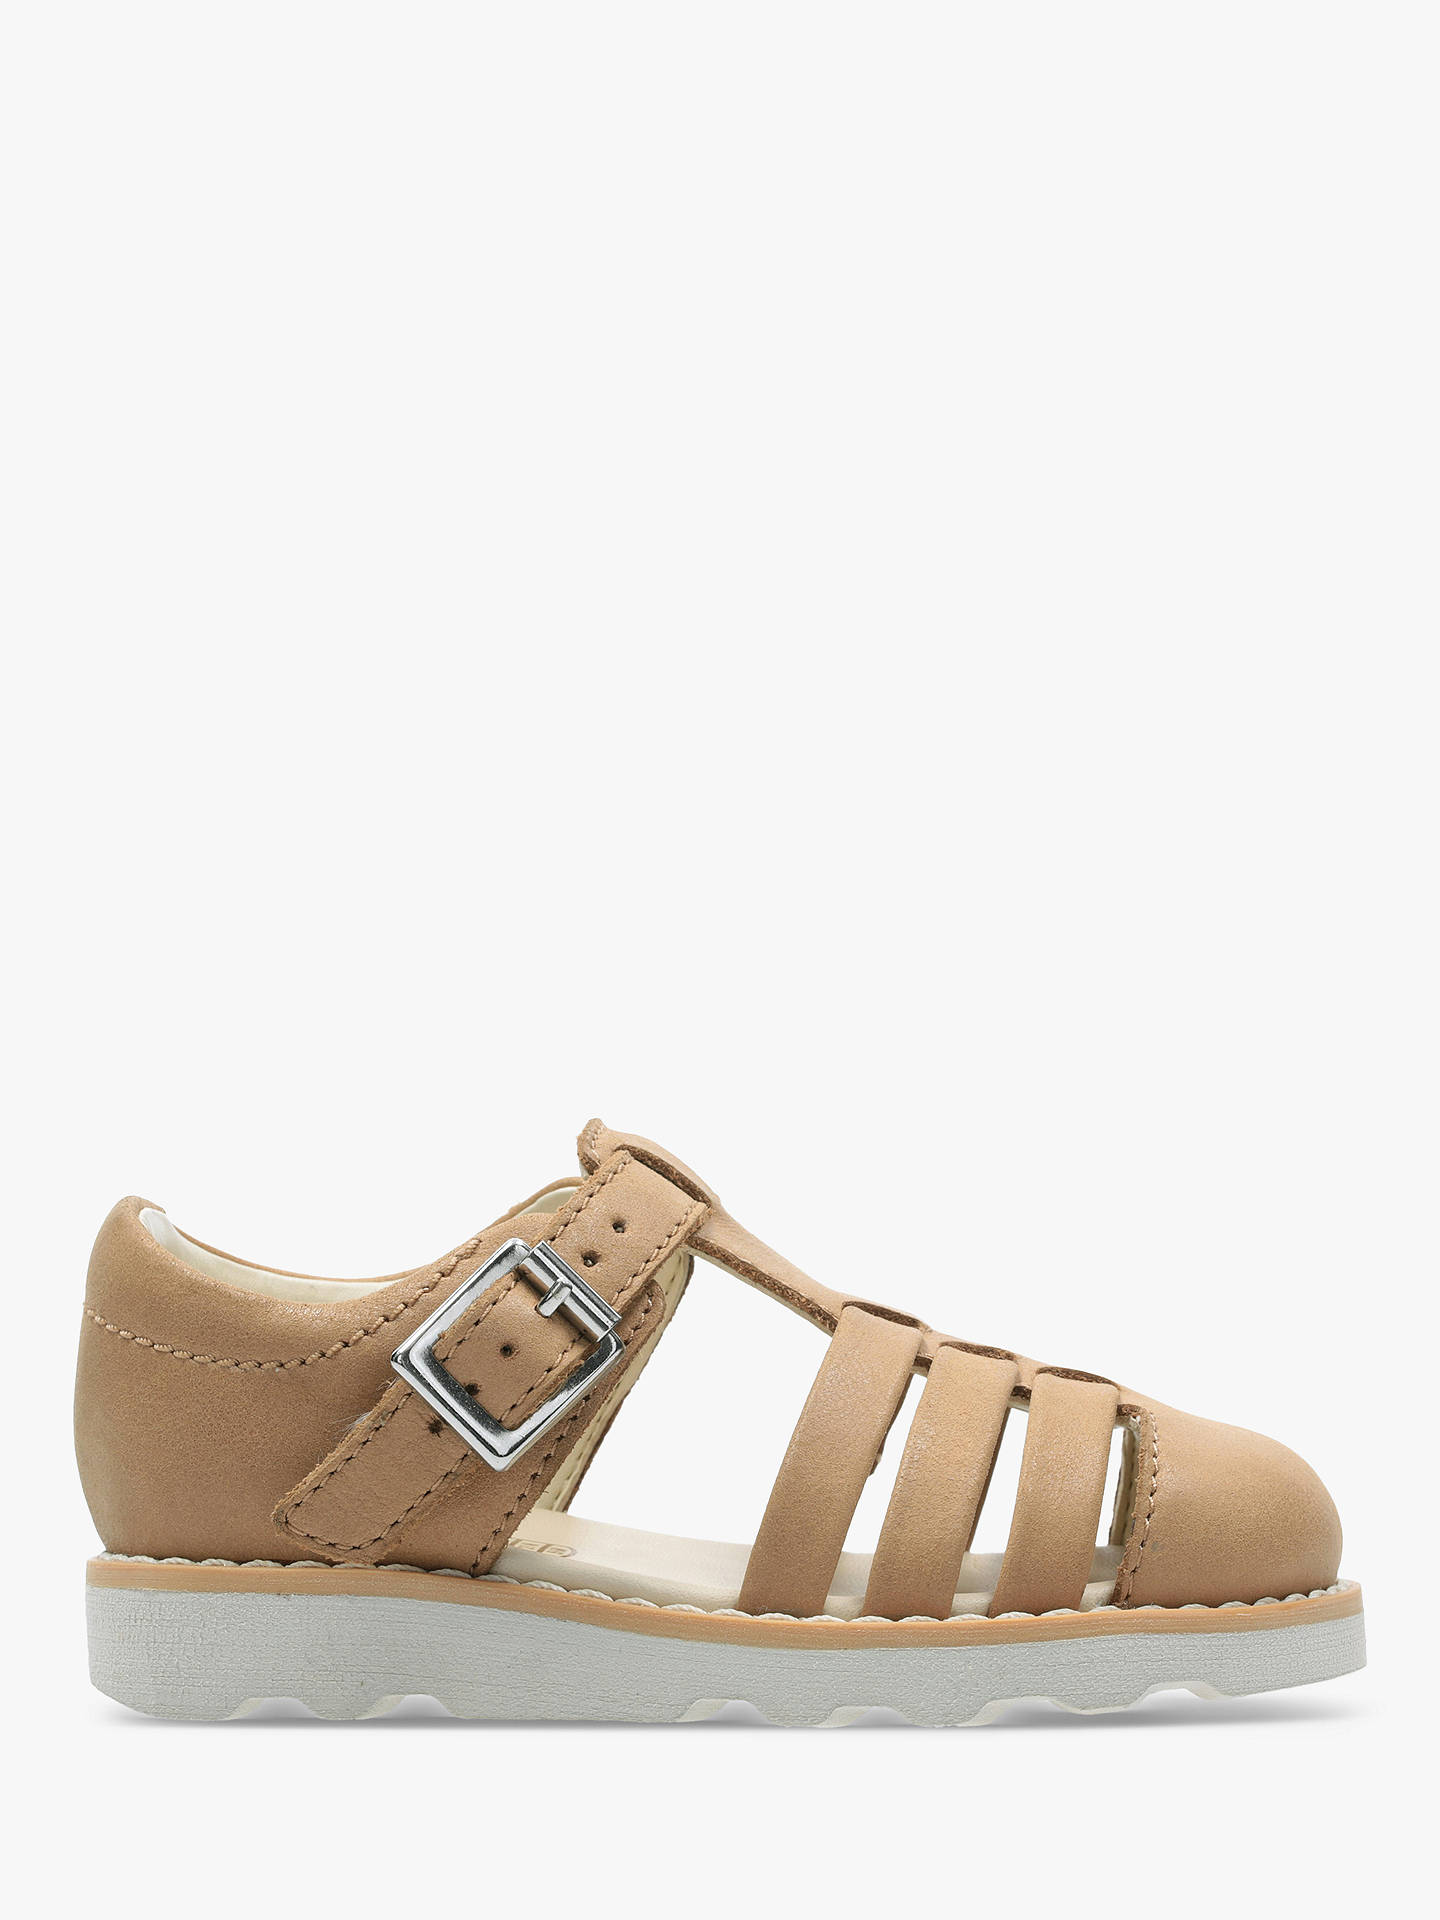 792de3632f84a Buy Clarks Children's Crown Stem Leather Sandals, Tan, 7.5G Jnr Online at  johnlewis ...